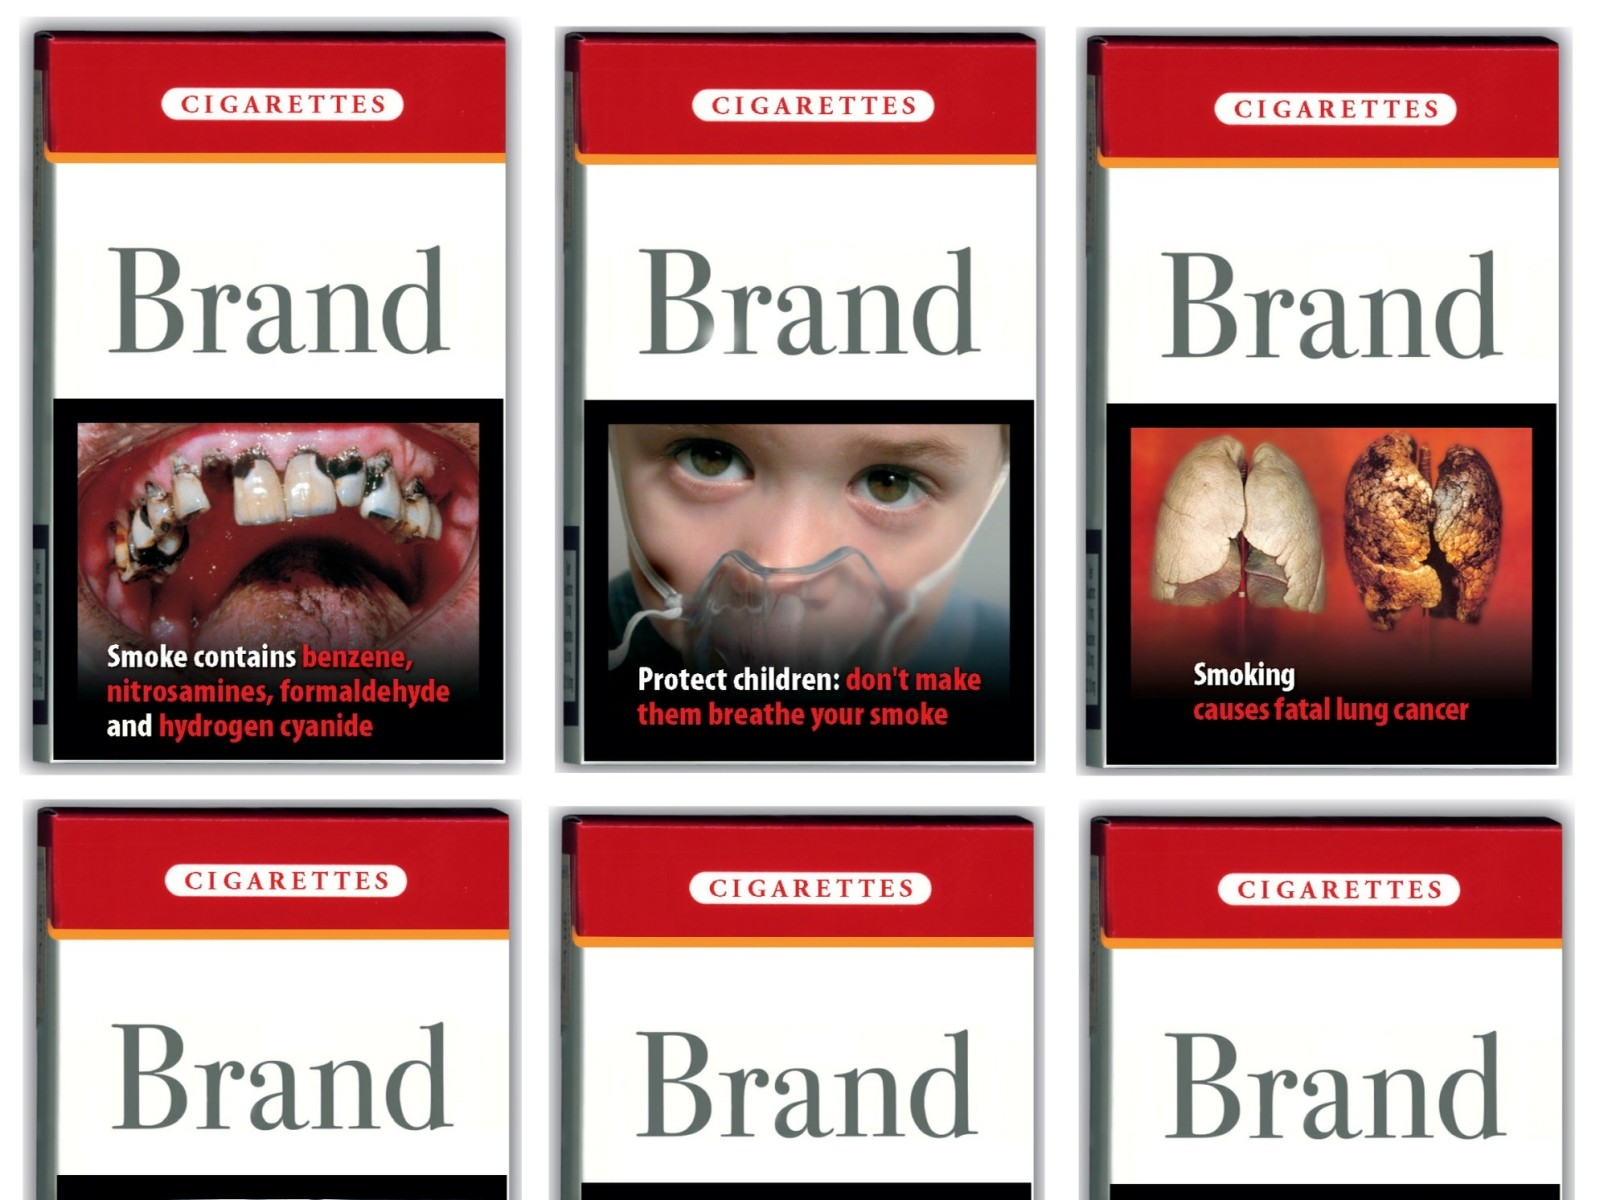 Graphic Warning Labels On Tobacco Packages Can Deter Some Smokers